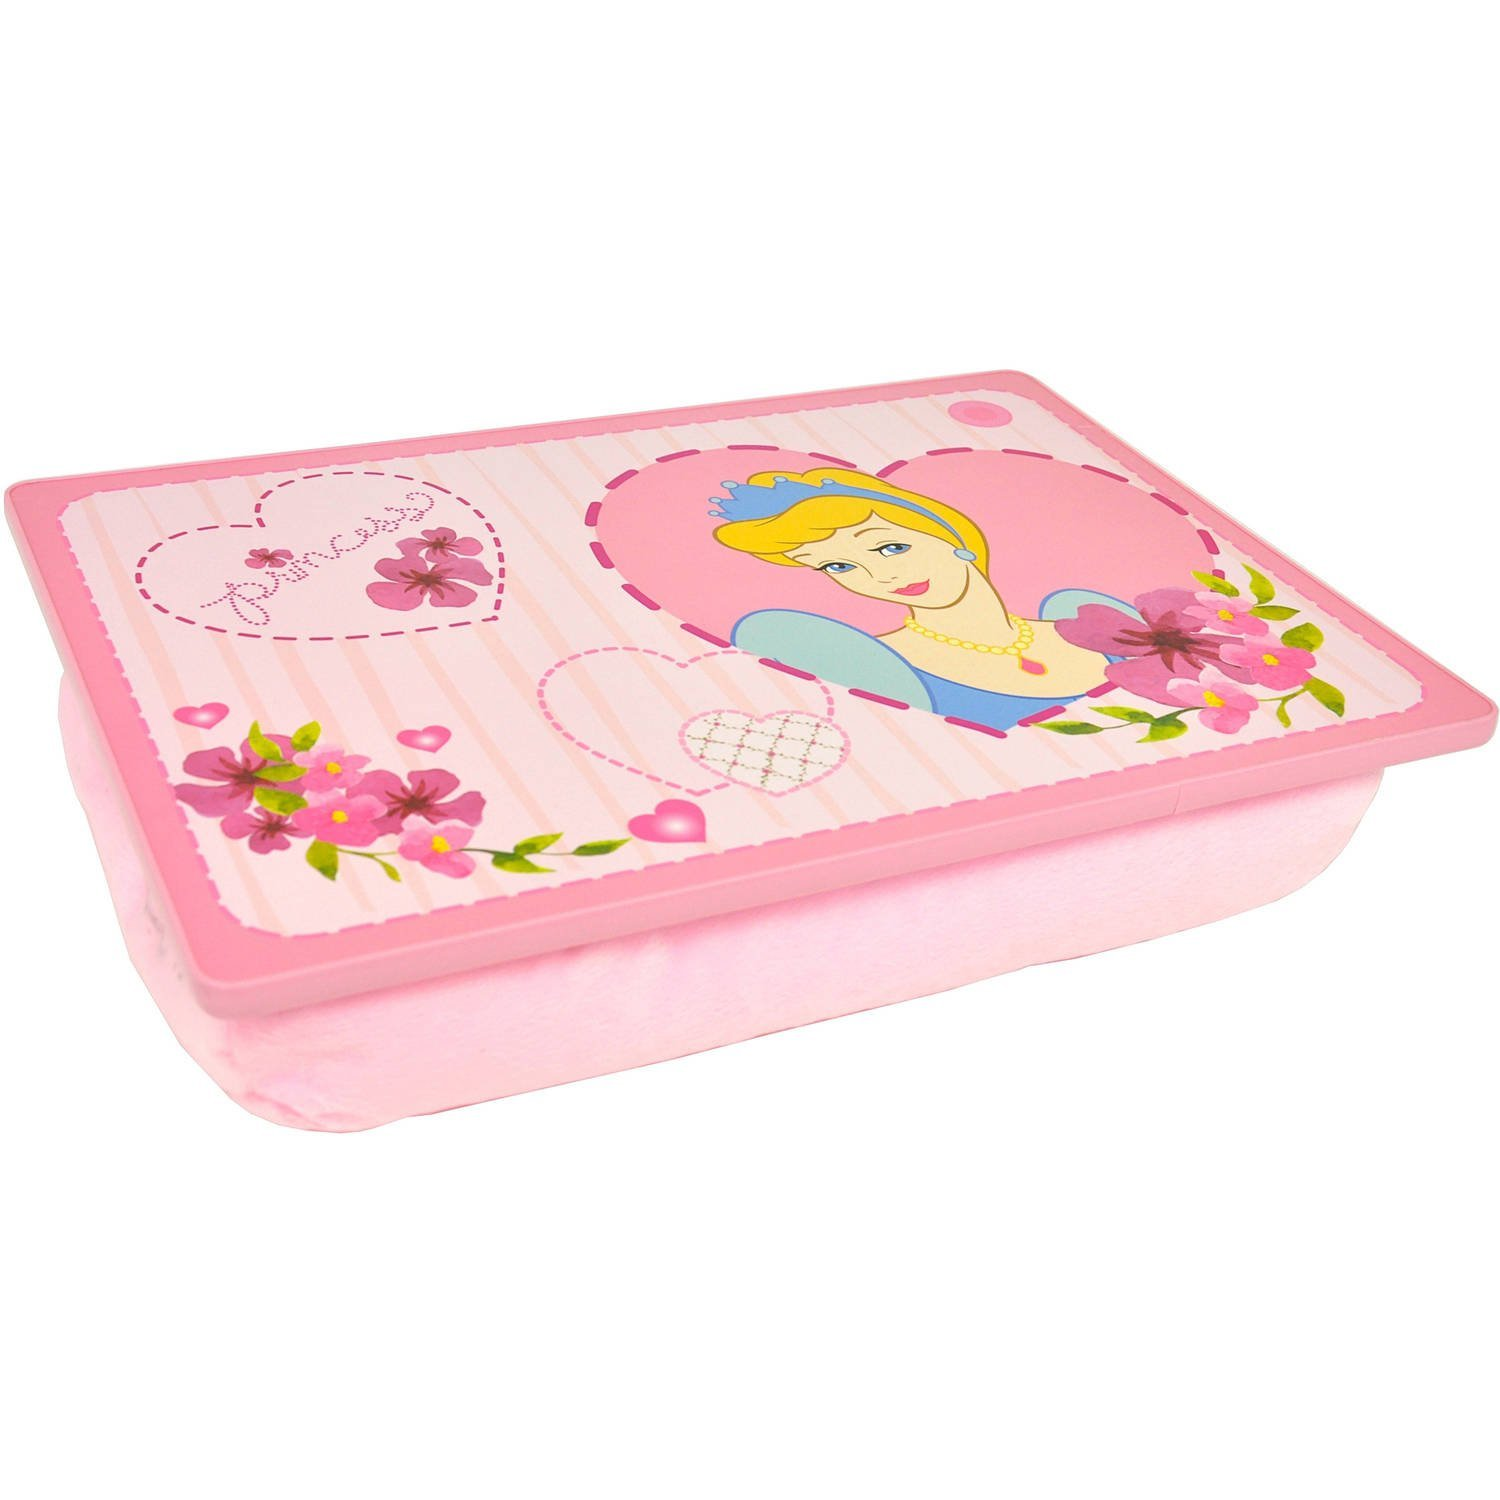 Adorable Colorful Handy and Durable Disney Princess Lap Desk